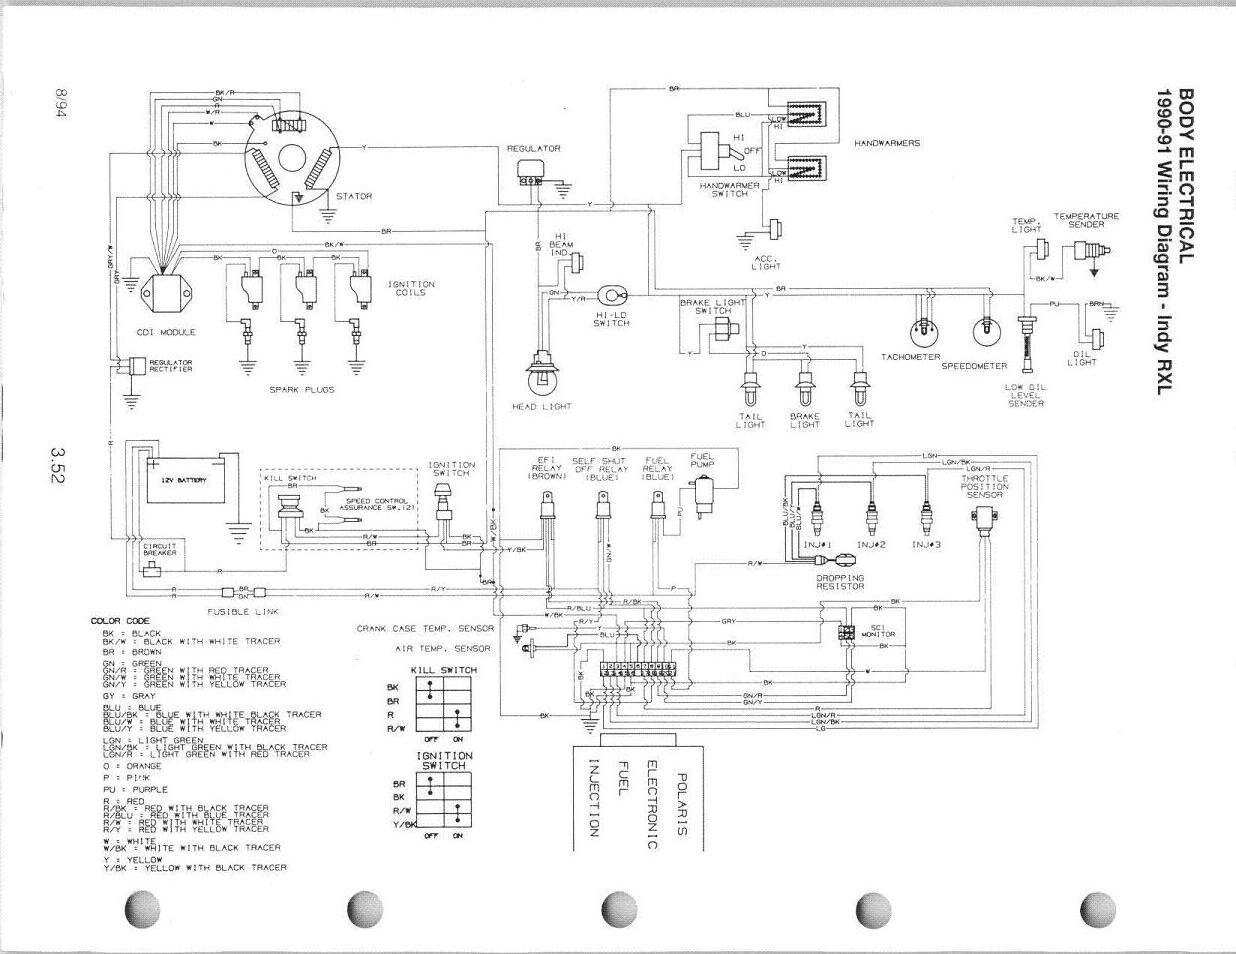 hight resolution of polaris indy 500 wiring diagram wiring diagram third level rh 3 7 15 jacobwinterstein com 2005 polaris sportsman 500 wiring diagram polaris sportsman 500